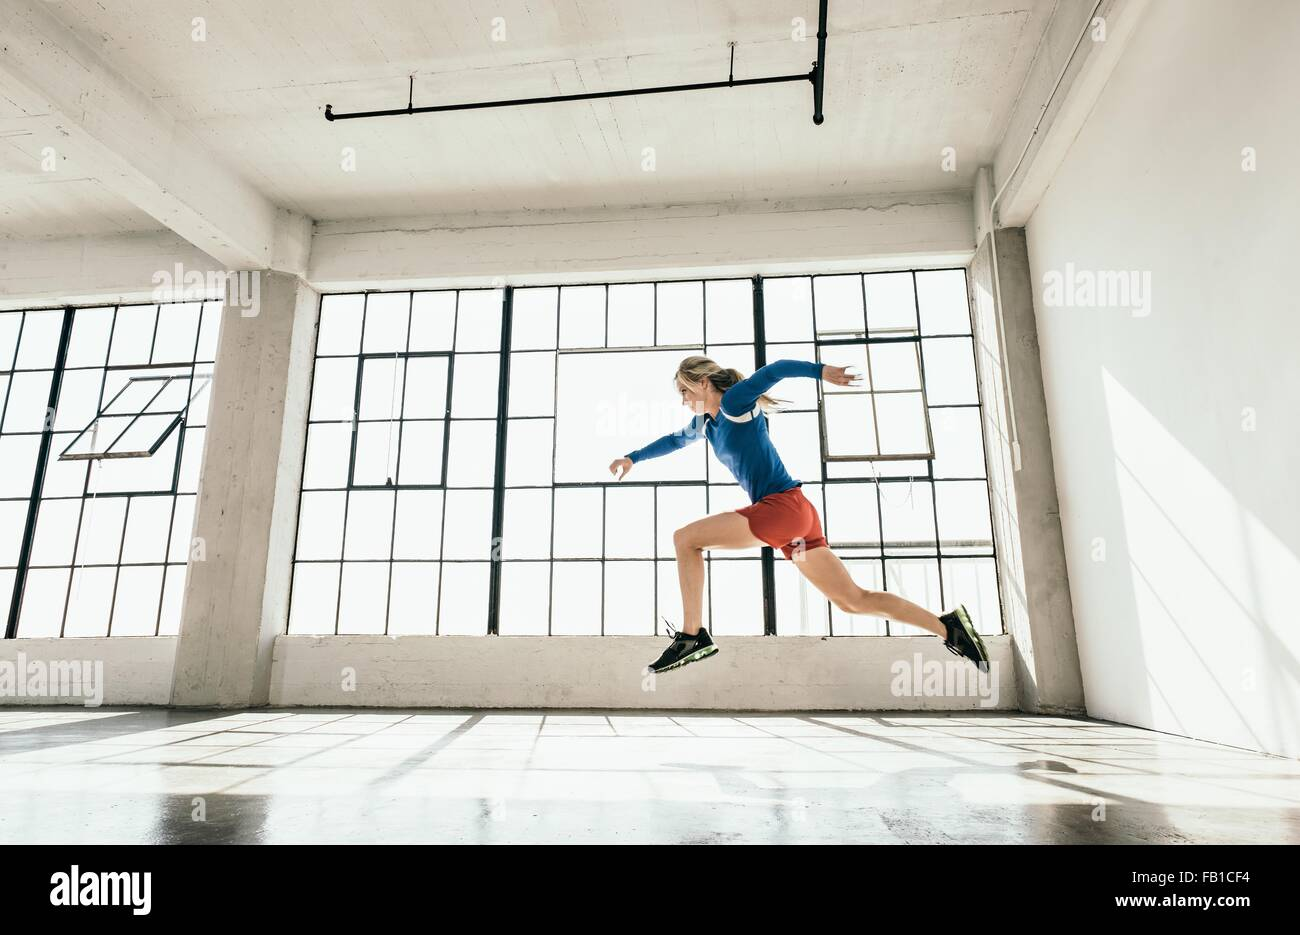 Side view of young woman in gym doing powerful mid air running stance - Stock Image